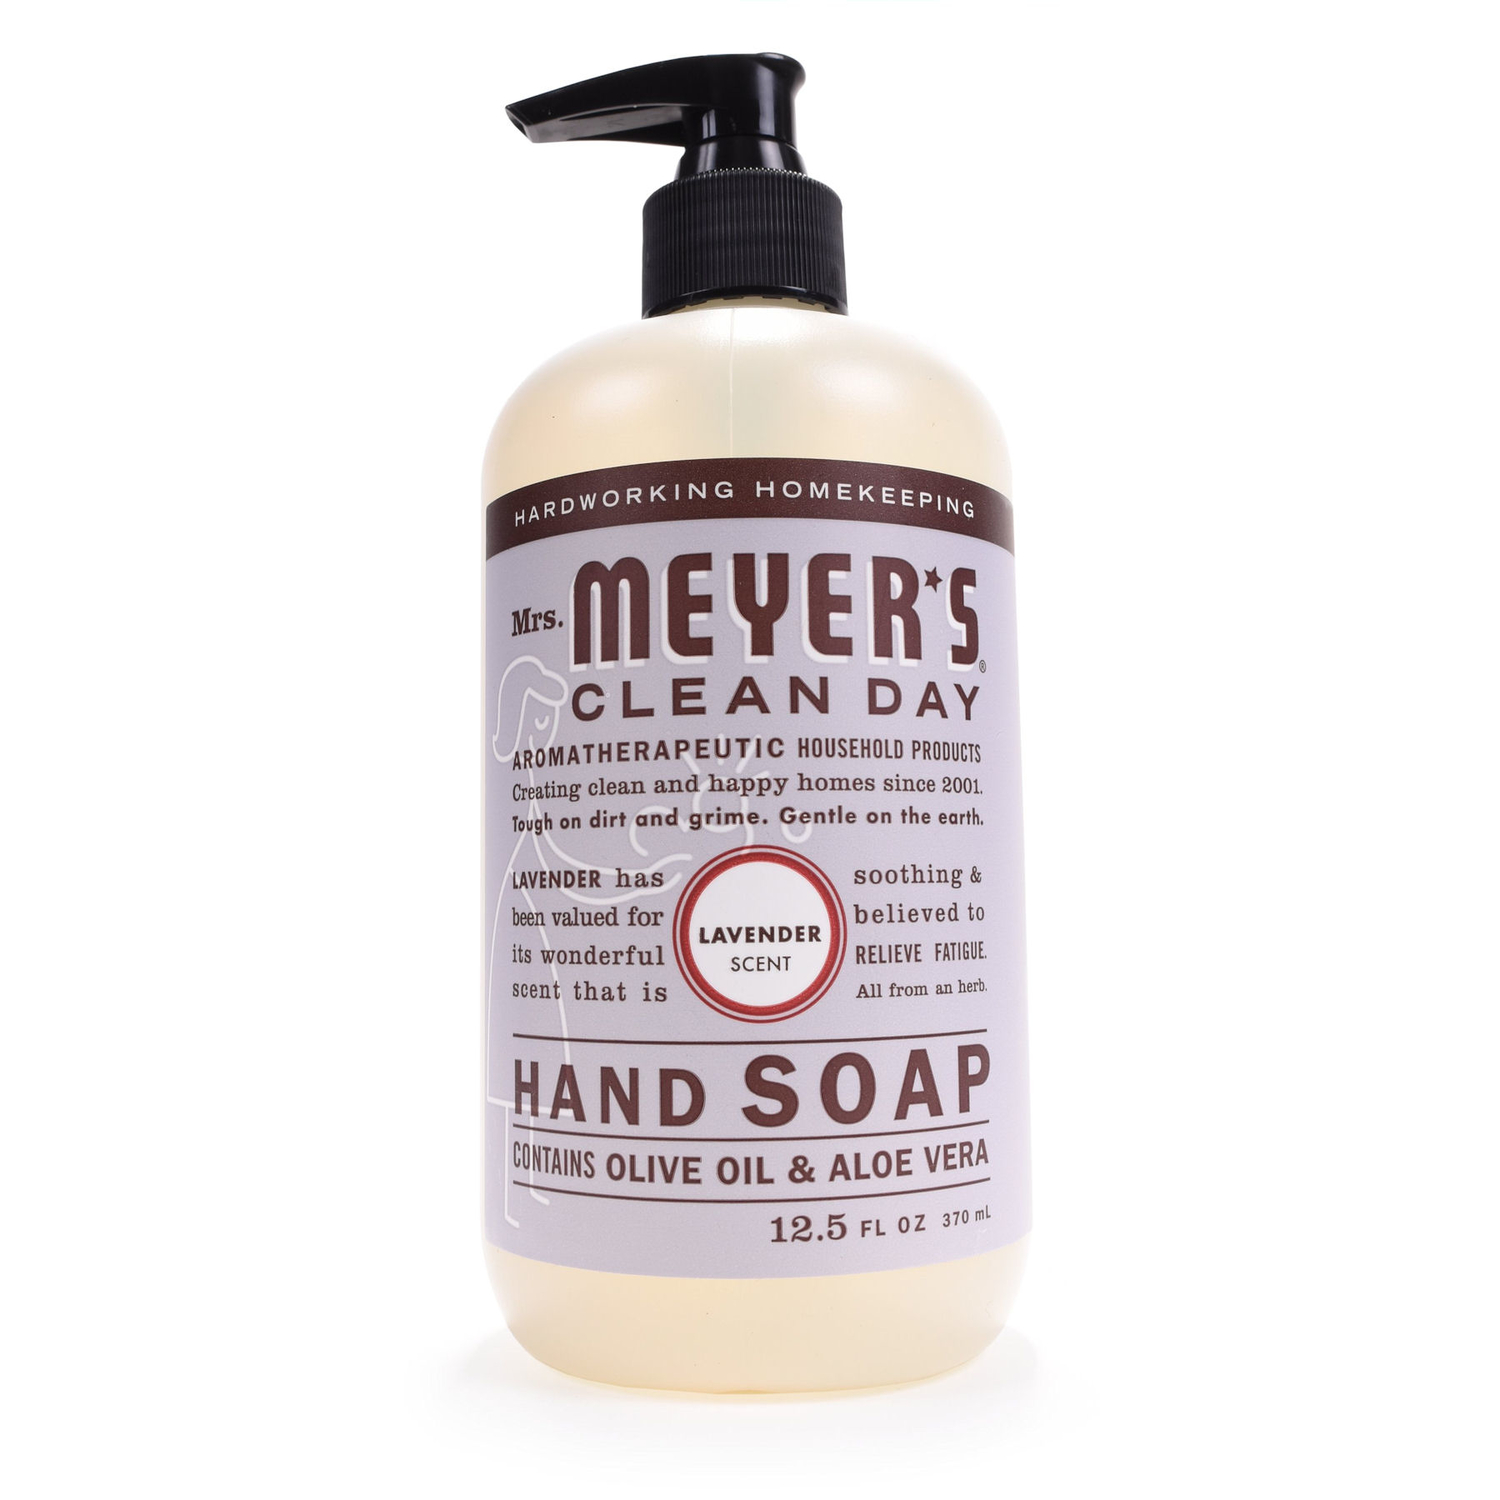 Mrs. Meyer's Clean Day 12 oz. Liquid Hand Soap Lavender Scent